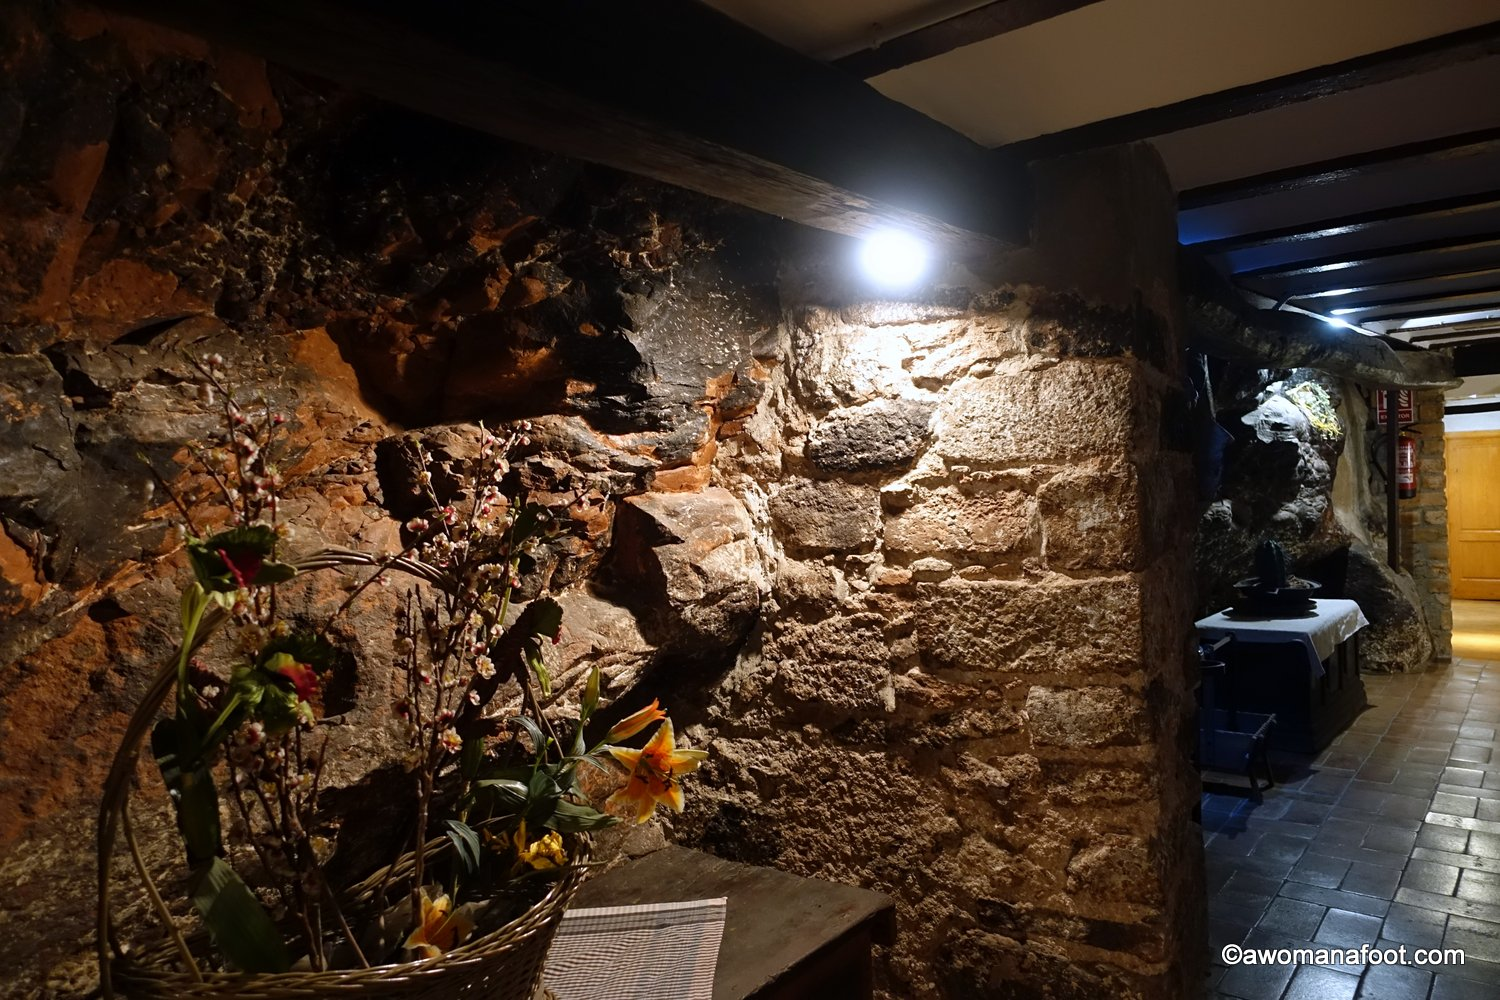 Looking for an unusual place, full of charm, history, and mystery? Make sure you visit El Puig de la Balma in Catalonia, Spain! #Spain | #Catalonia | #travel | #solo | #hotel | #review | awomanafoot.com